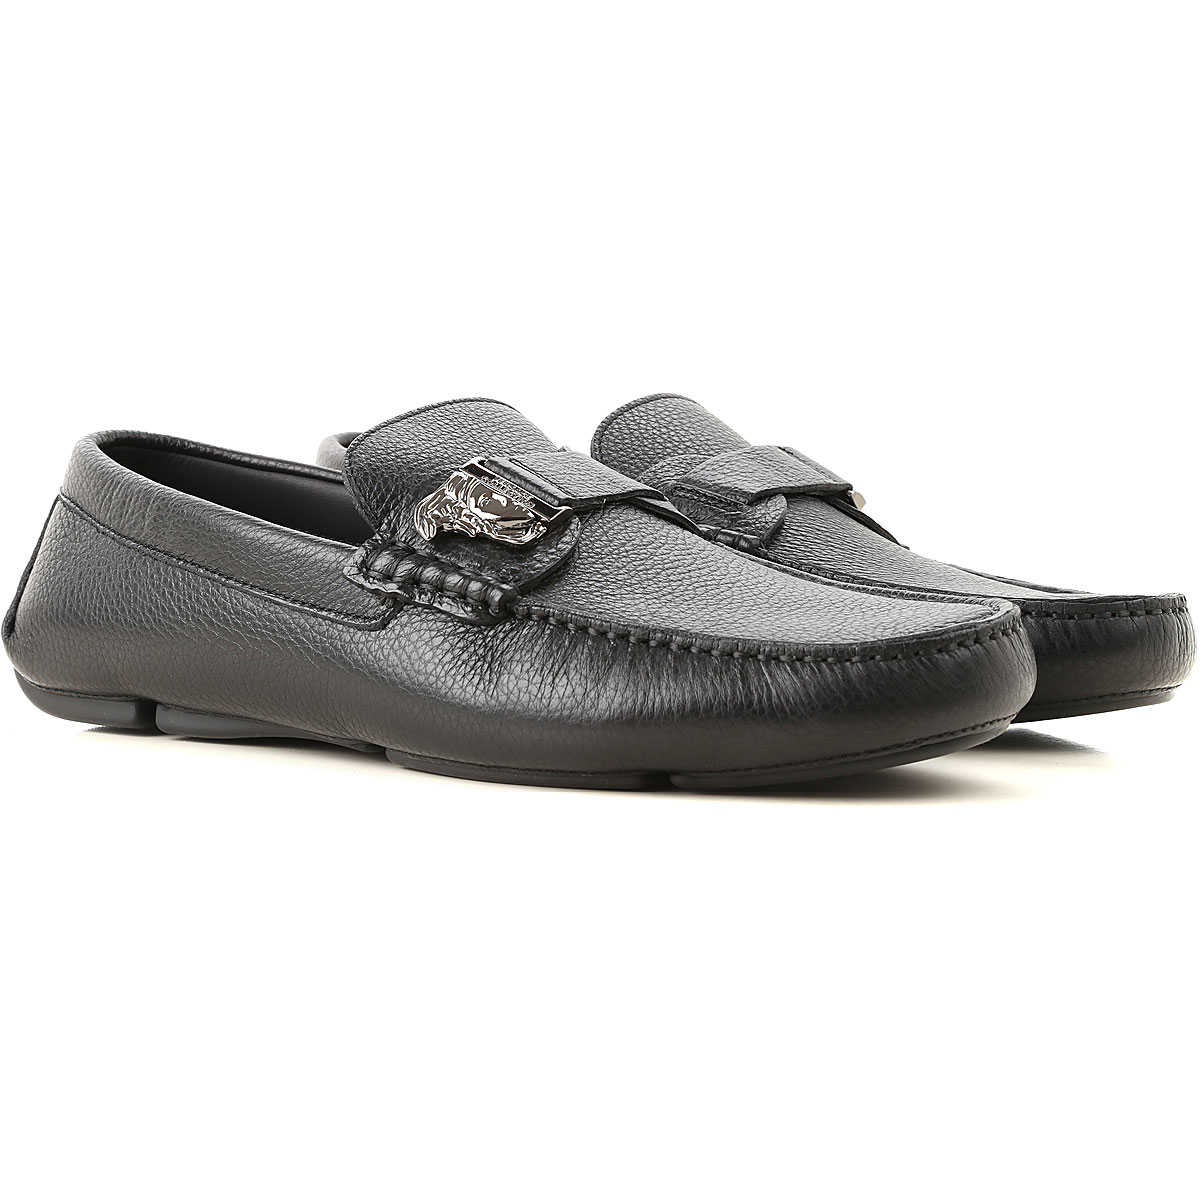 Versace Loafers for Men Black USA - GOOFASH